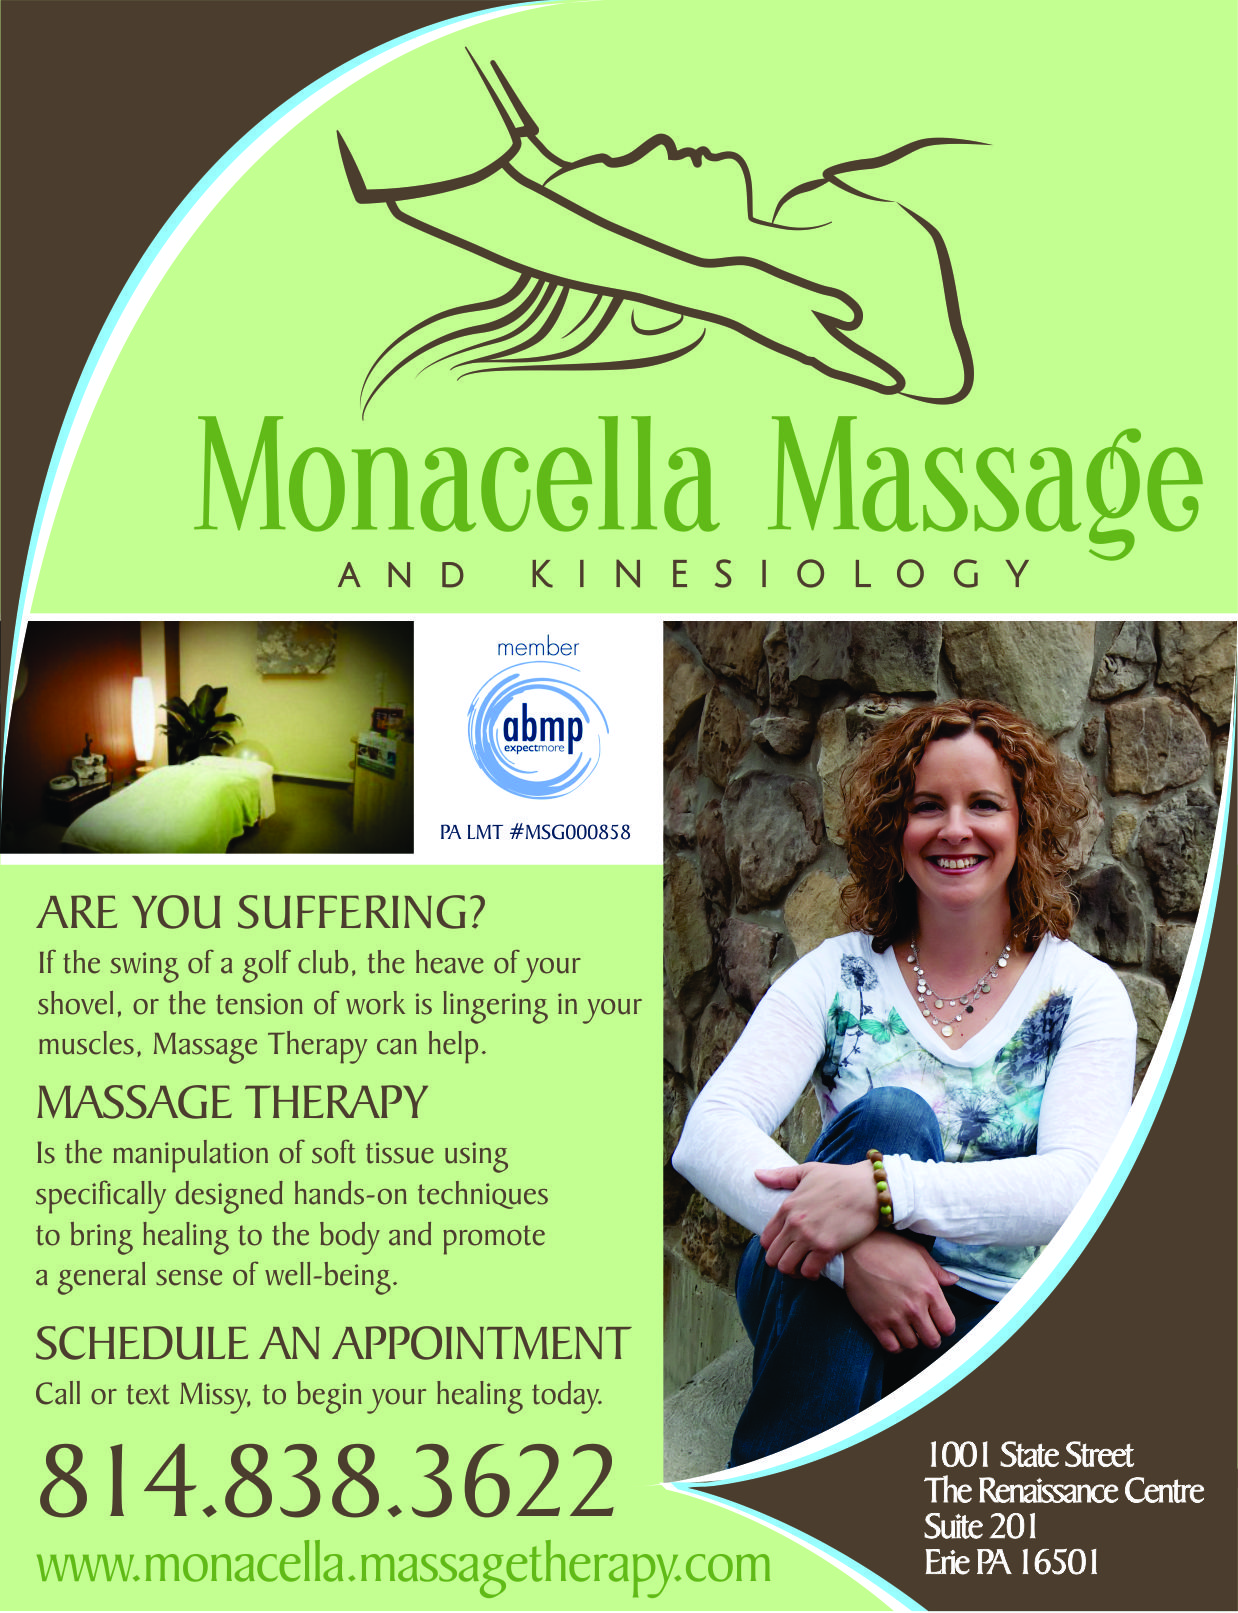 Monacella Massage & Kinesiology